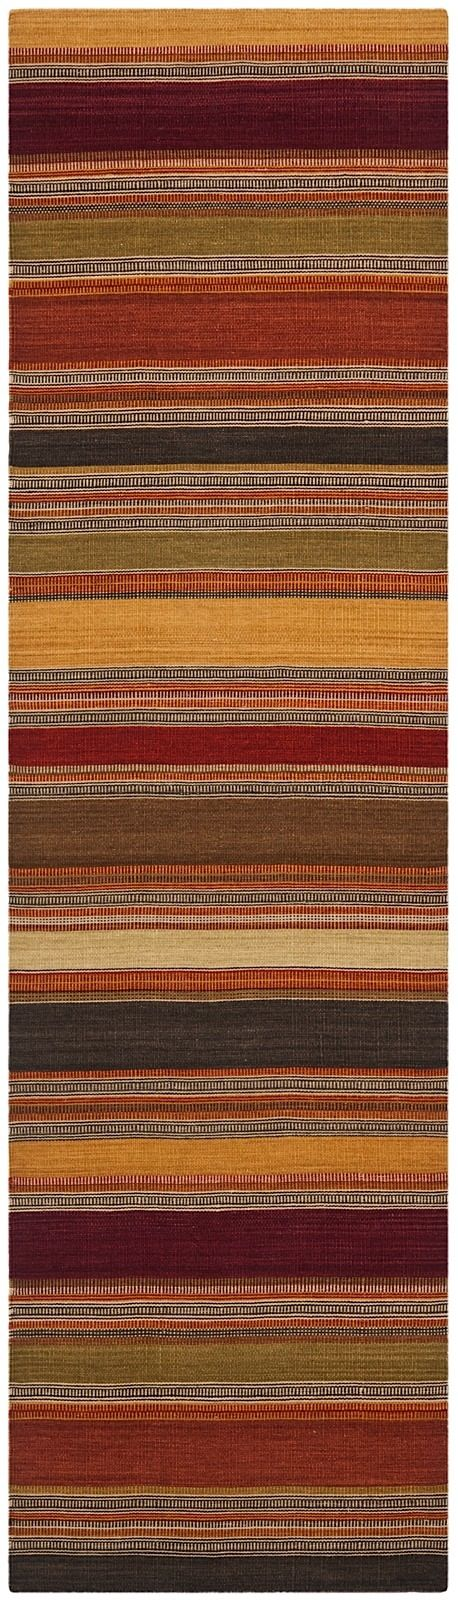 safavieh striped kilim solid/striped area rug collection